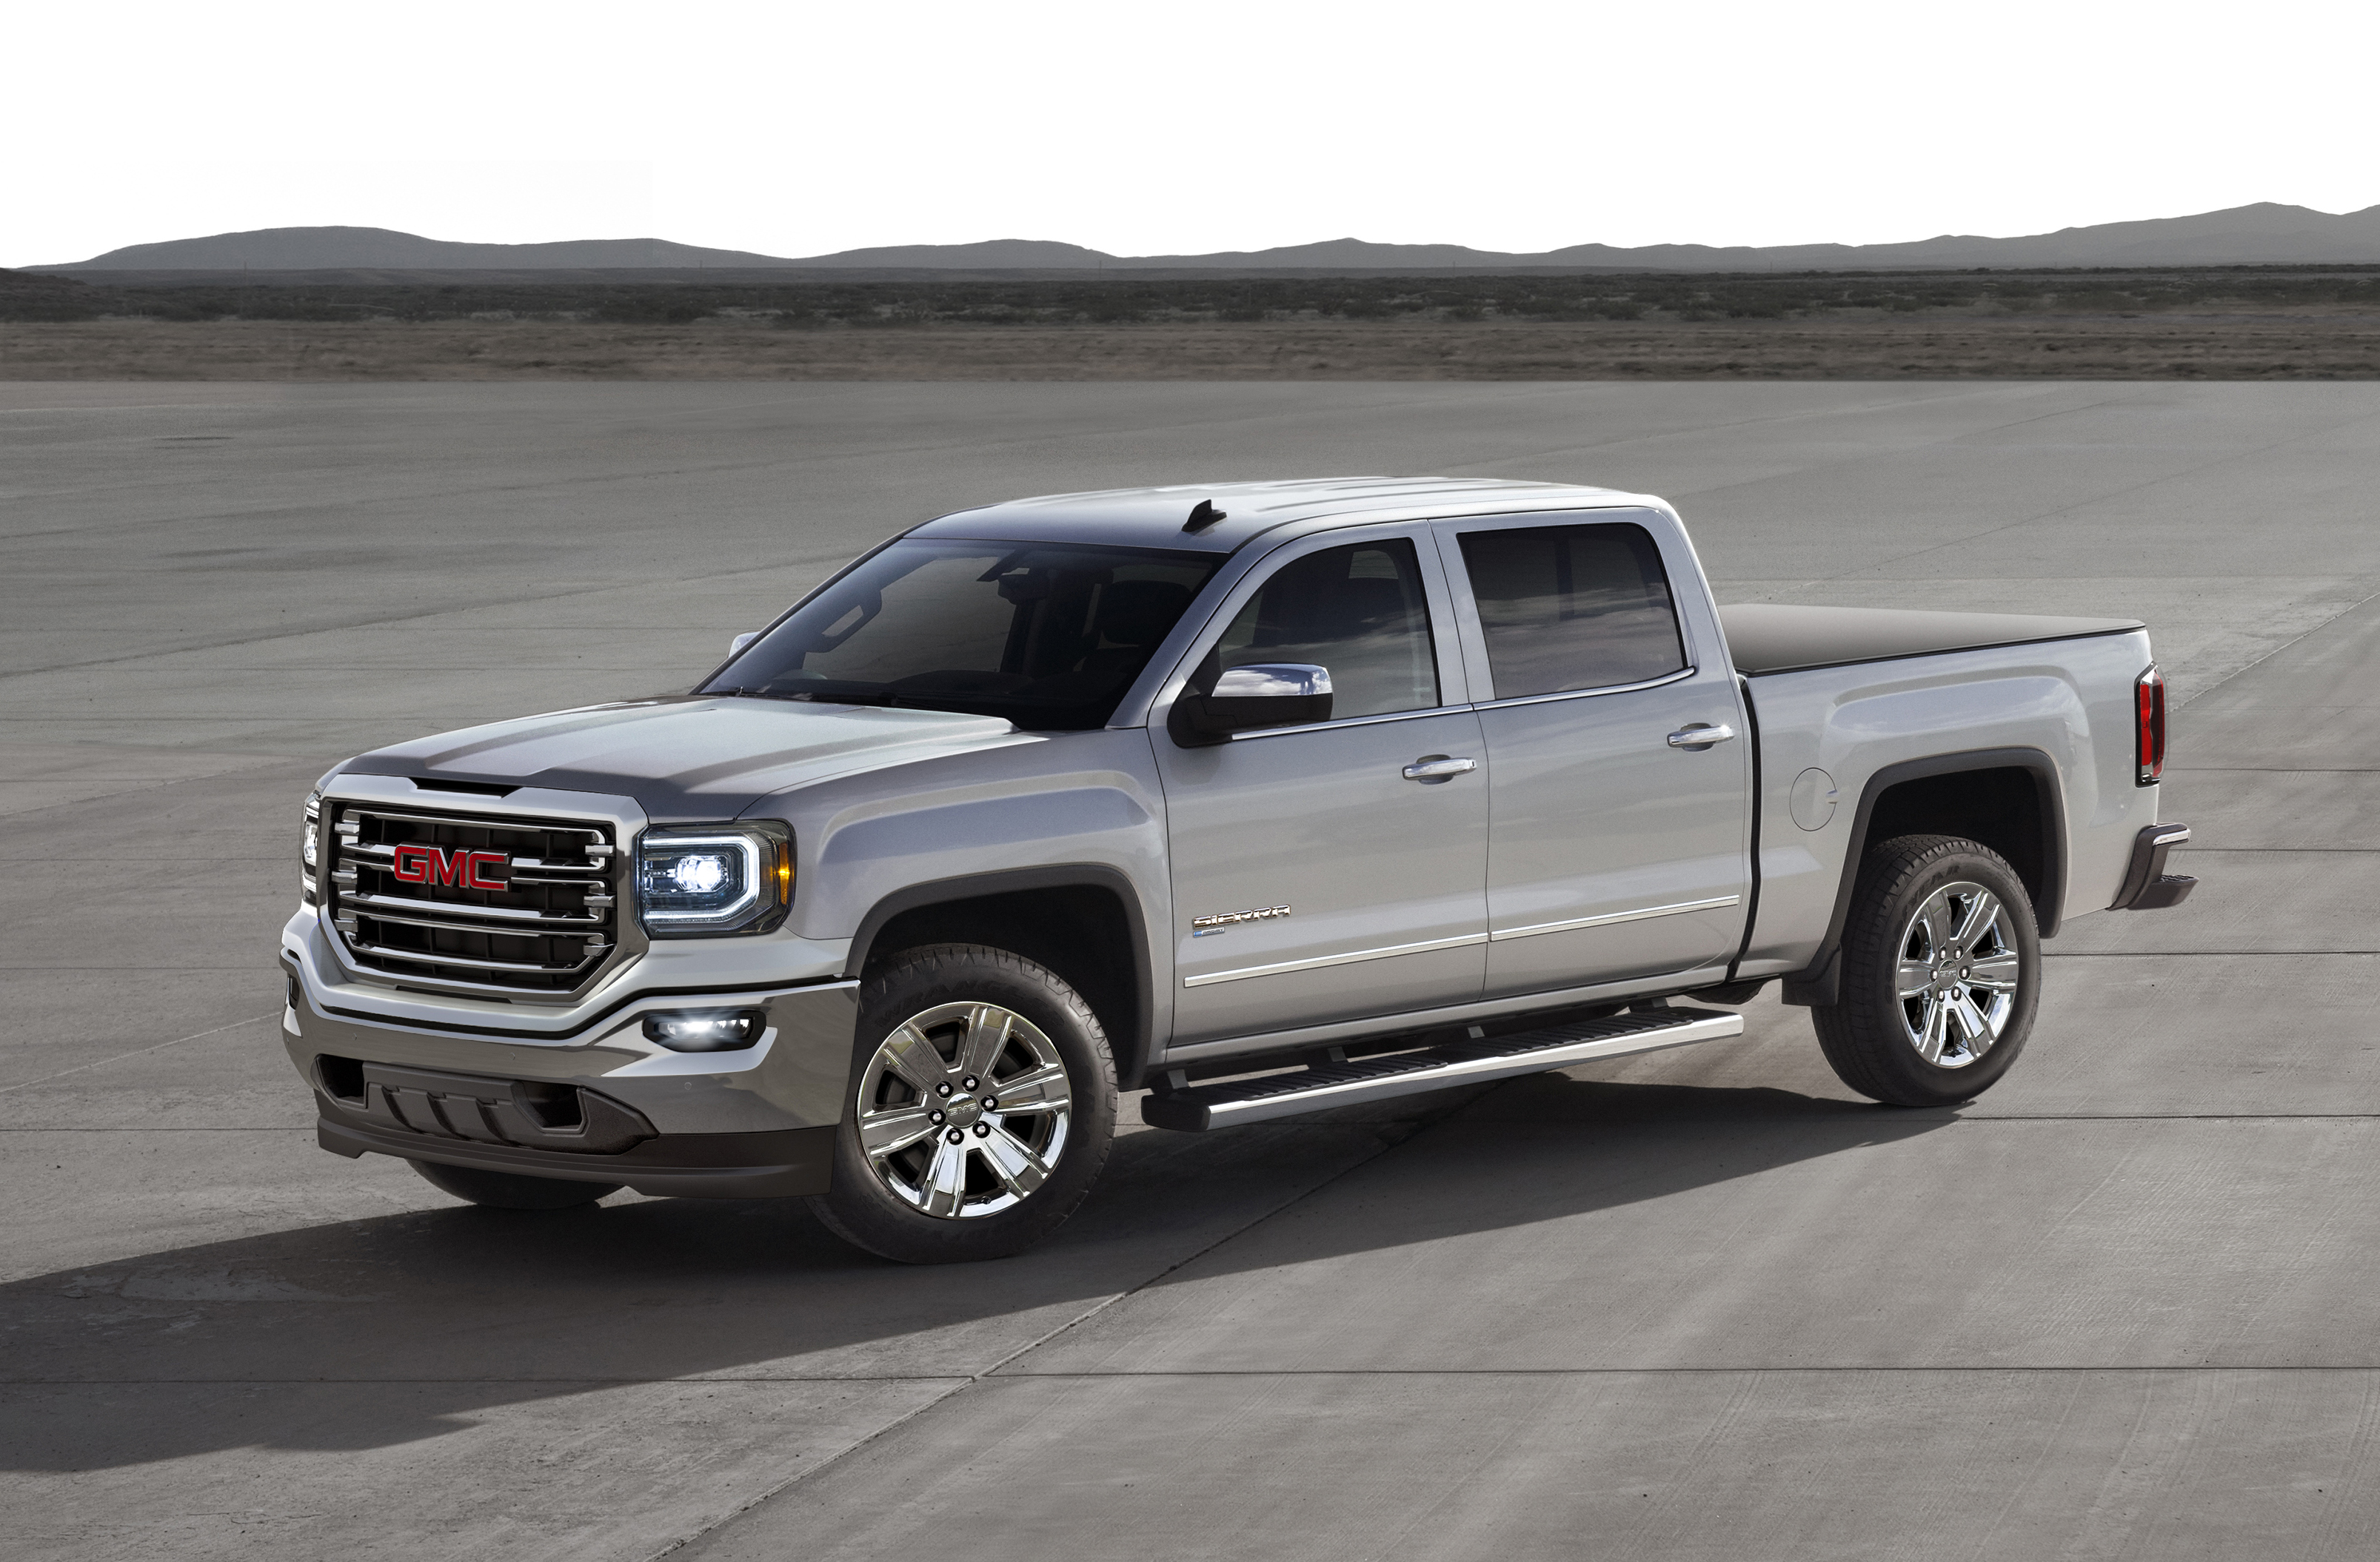 2016 Chevrolet Silverado Eist Hybrid And Gmc Sierra Launched